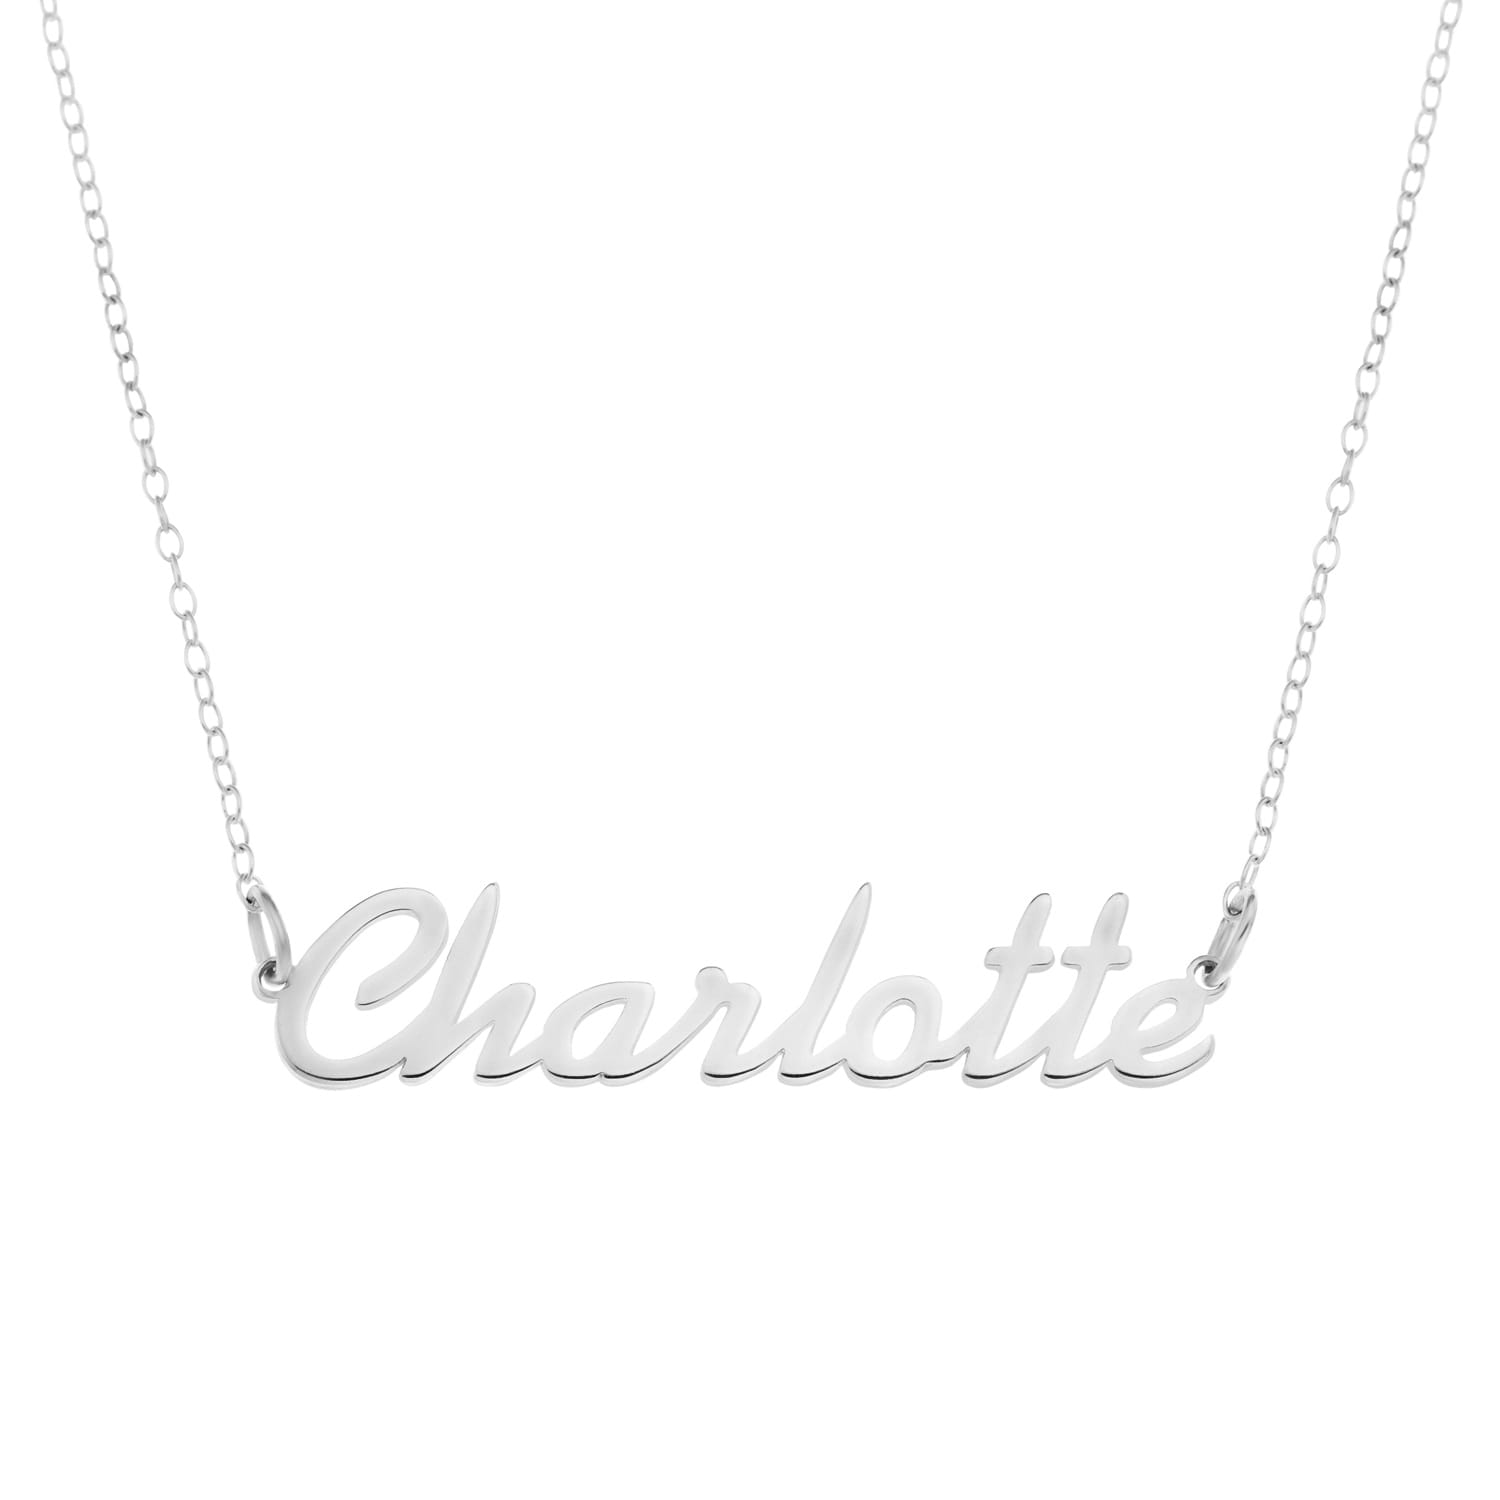 Sterling Silver Personalised Gifts Carrie Bradshaw Name Necklace